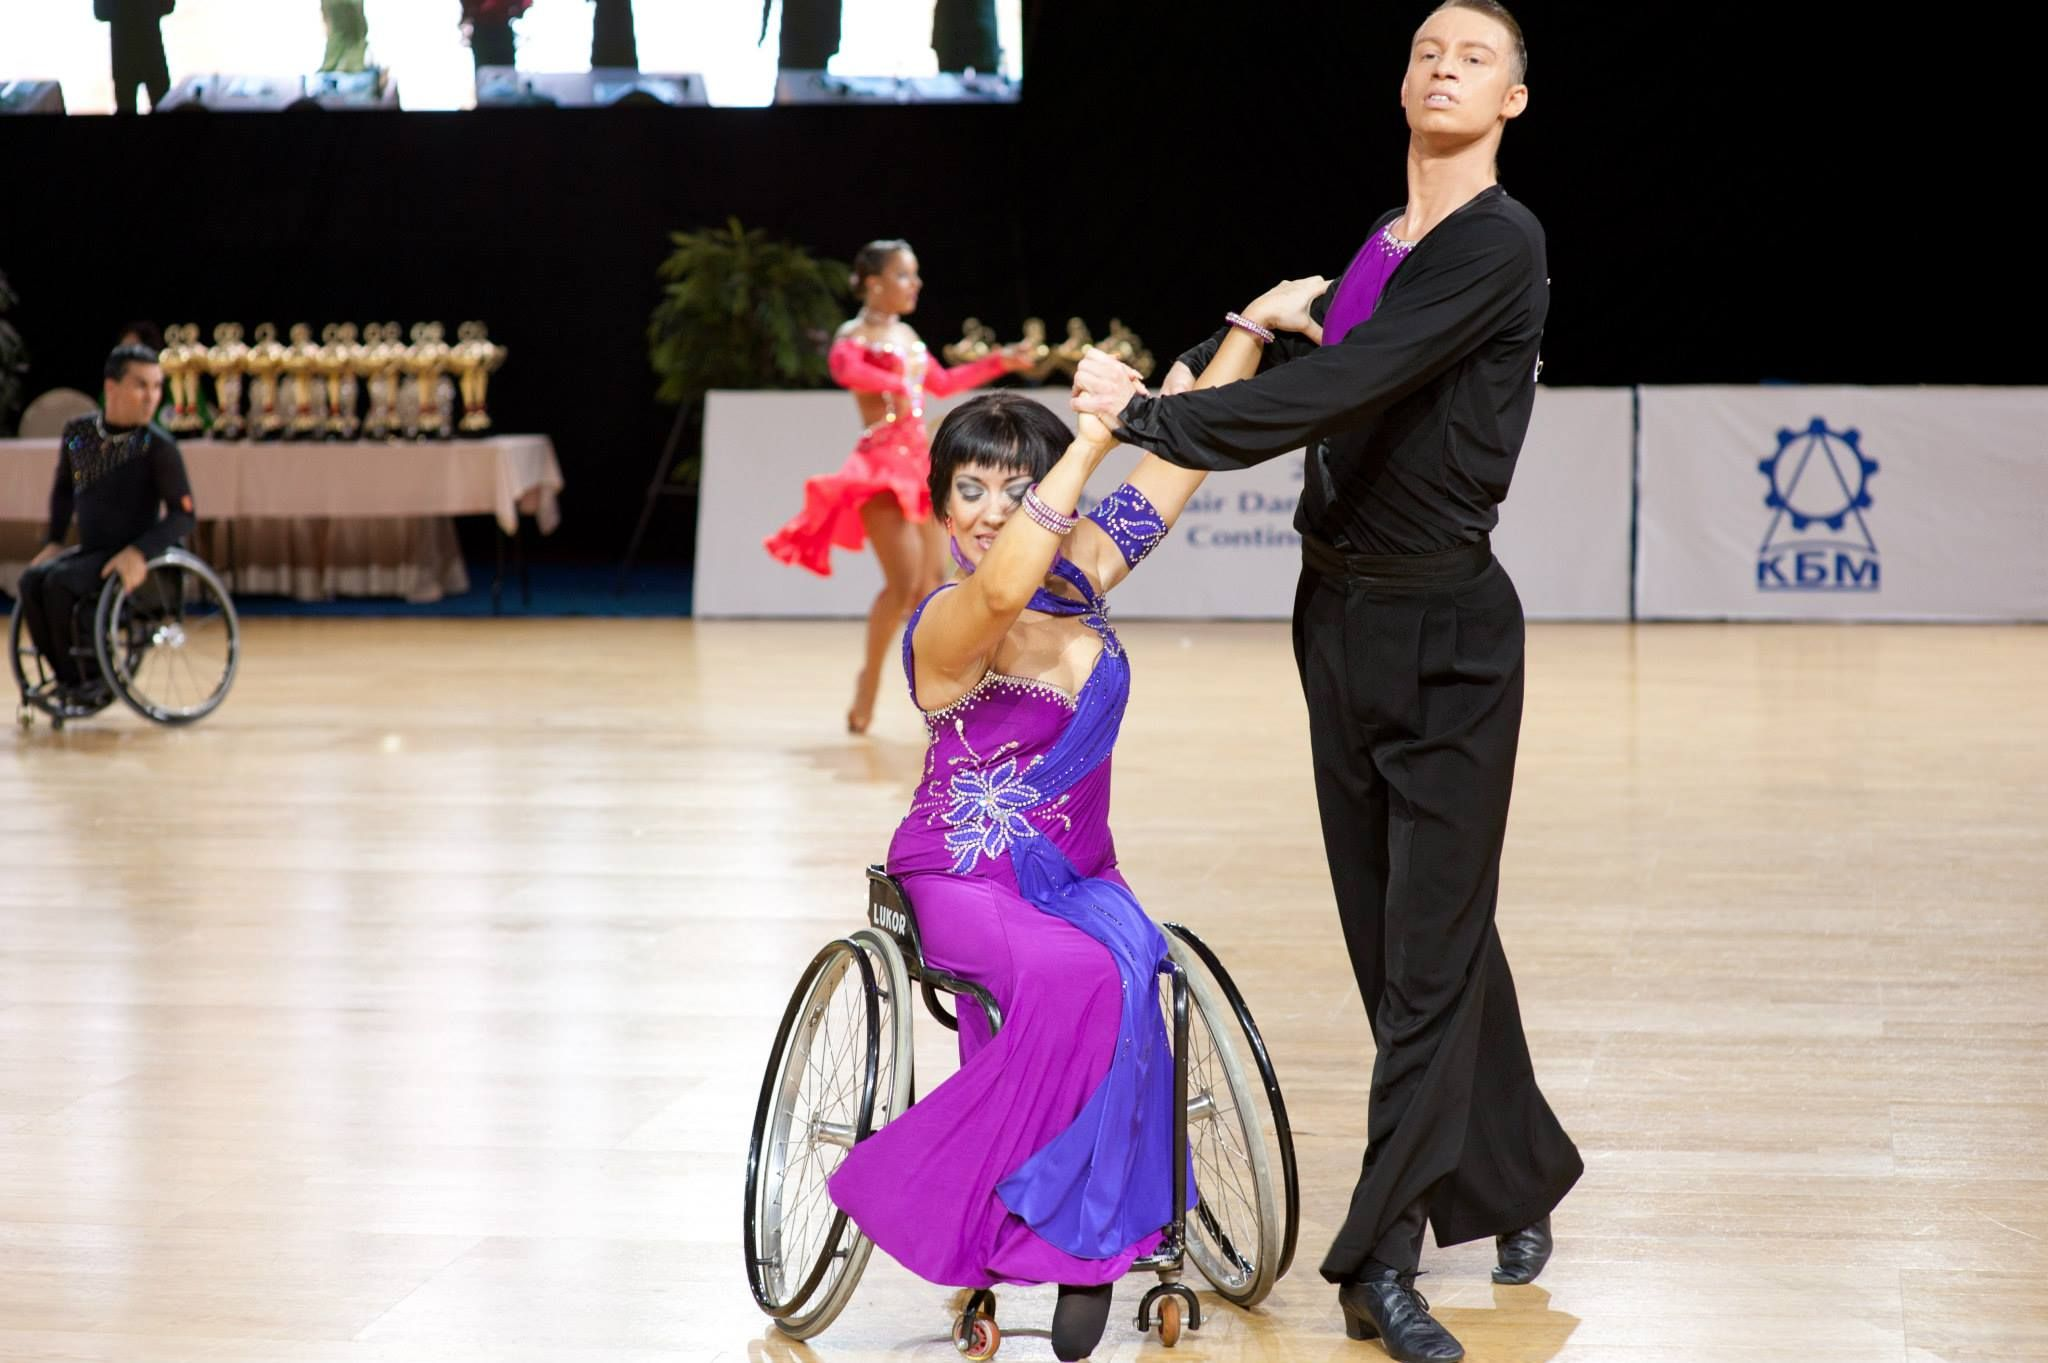 2013 Ipc Wheelchair Dance Sport Continents Cup By Anton Galitskiy Have You Heard About Wheelchair Dance Sport Over 10 Wheelchair Women Dance Ballroom Dancing